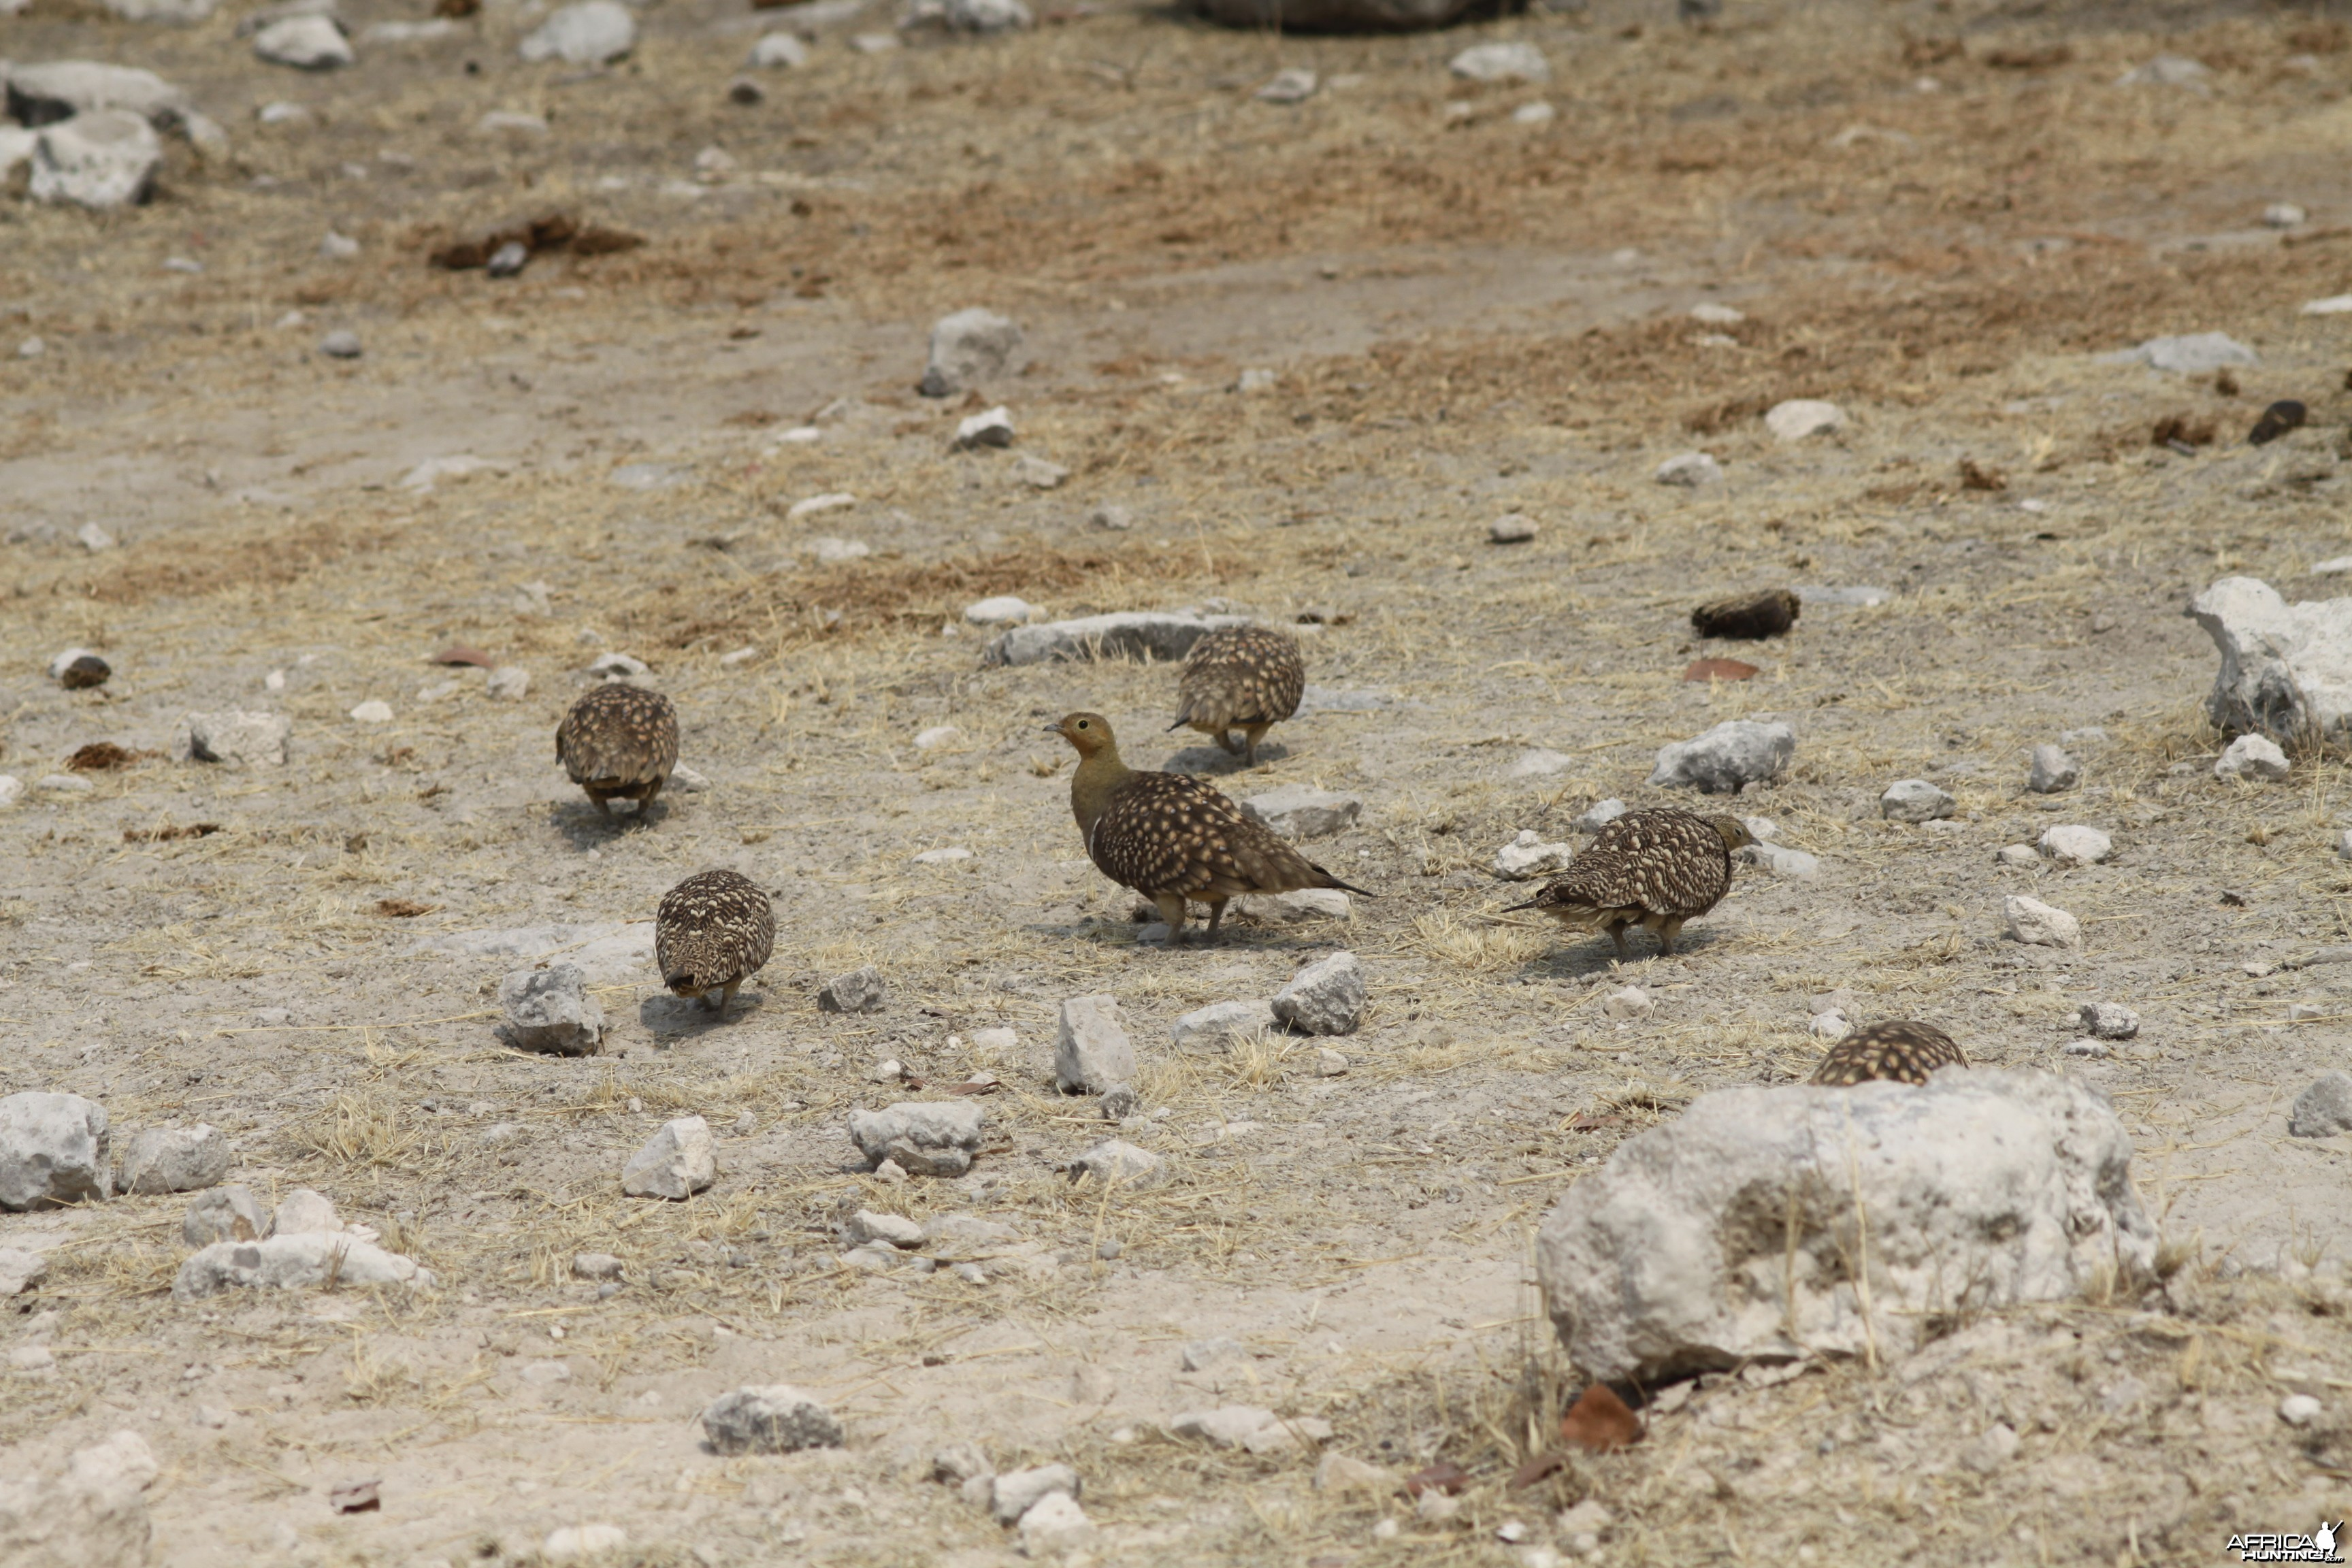 Sandgrouse at Etosha National Park